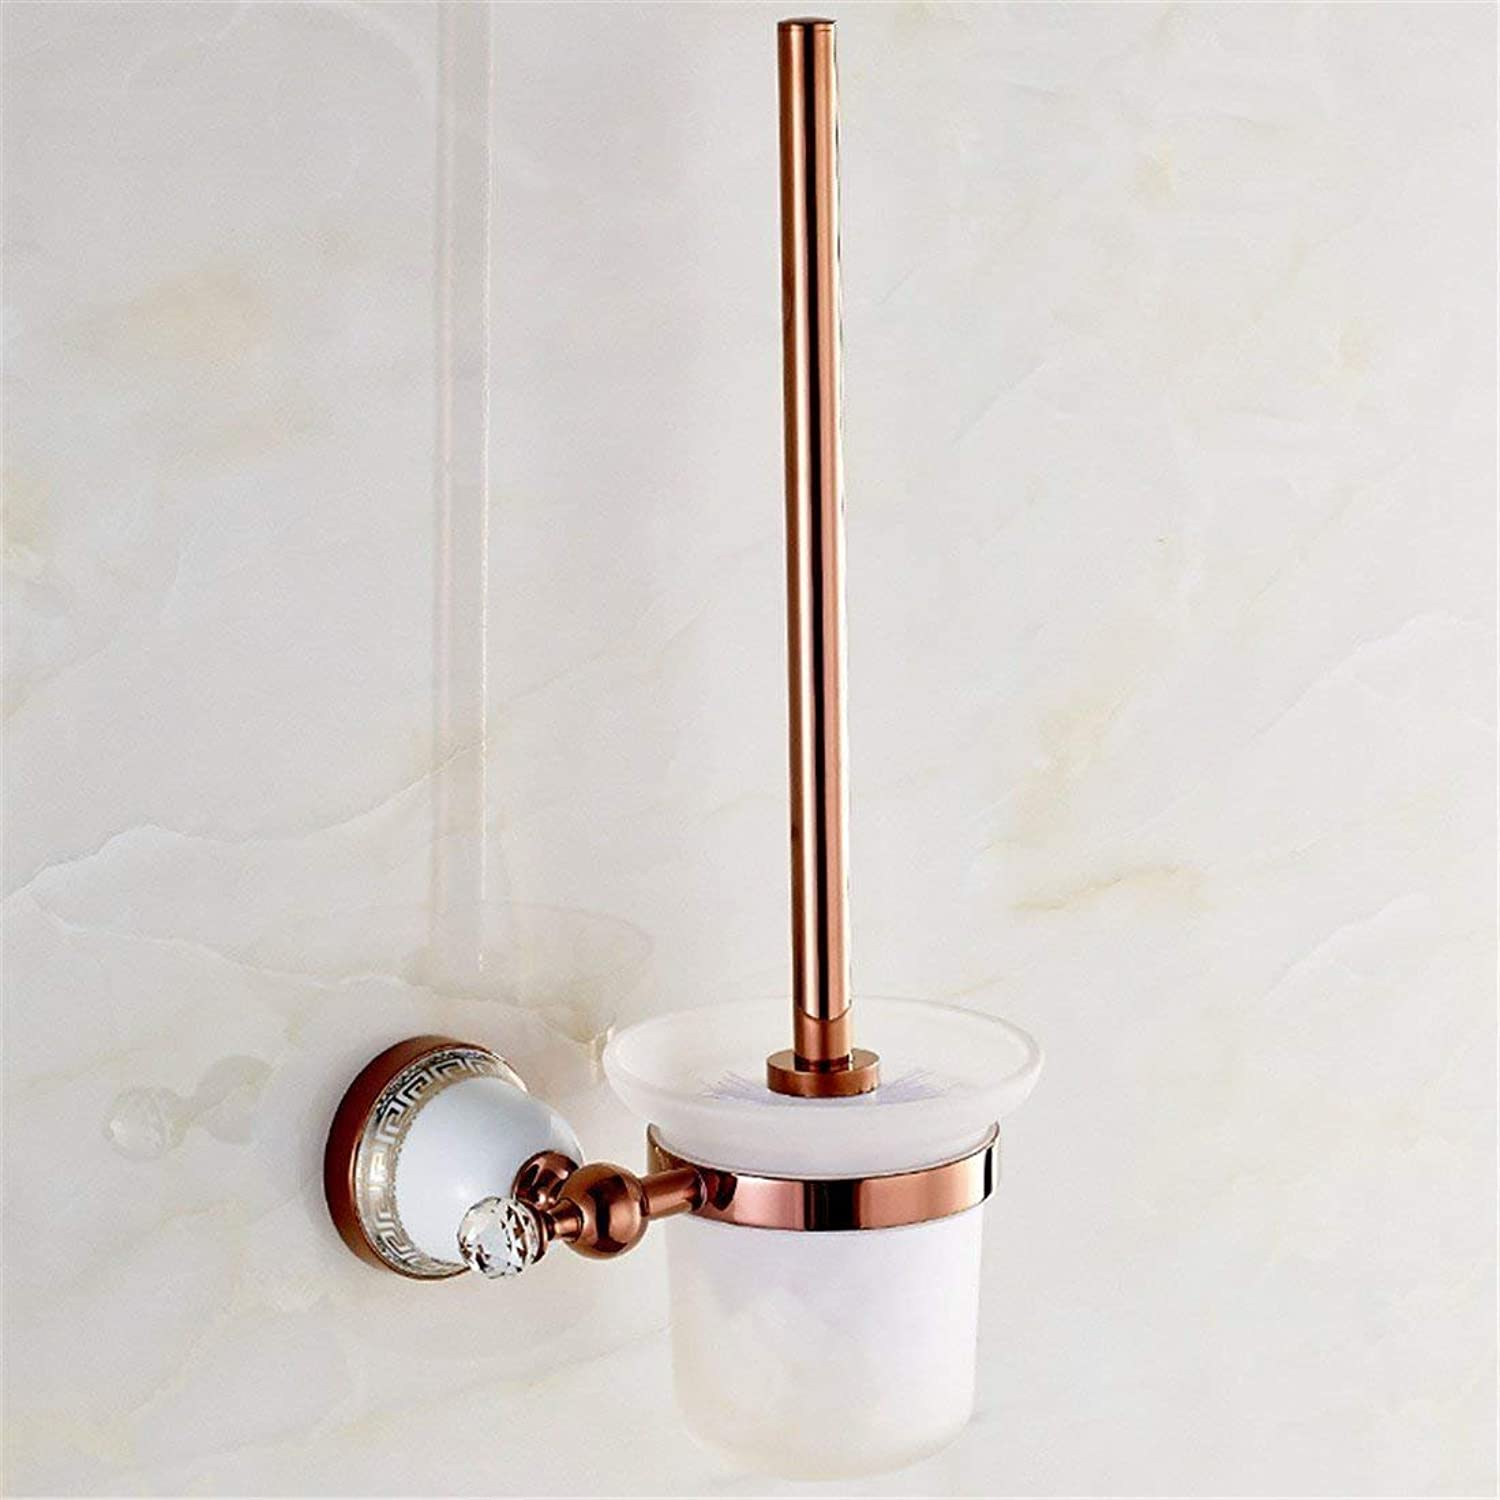 Pink gold, Accessories for Bathroom in Function of The Ceramic Dry-Towels,Pastoral Plateau WC Brush